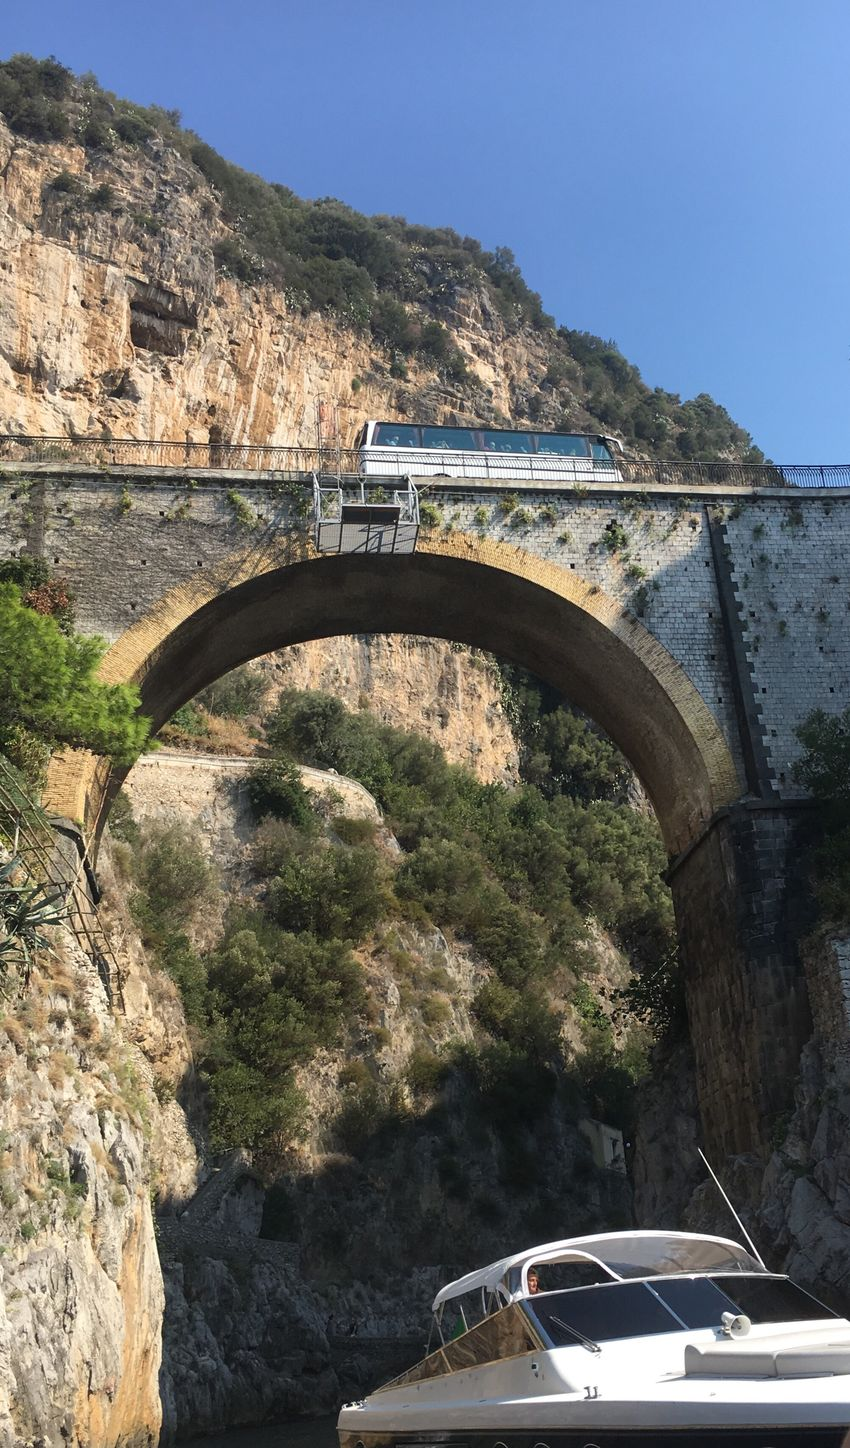 Transportation Arch Car Mode Of Transport Bridge - Man Made Structure Land Vehicle Connection Built Structure Mountain Arch Bridge Architecture Tree Road Arched Tunnel Cliff Engineering Amalfitan Coast Amalfi Coast Drive Outdoors Day